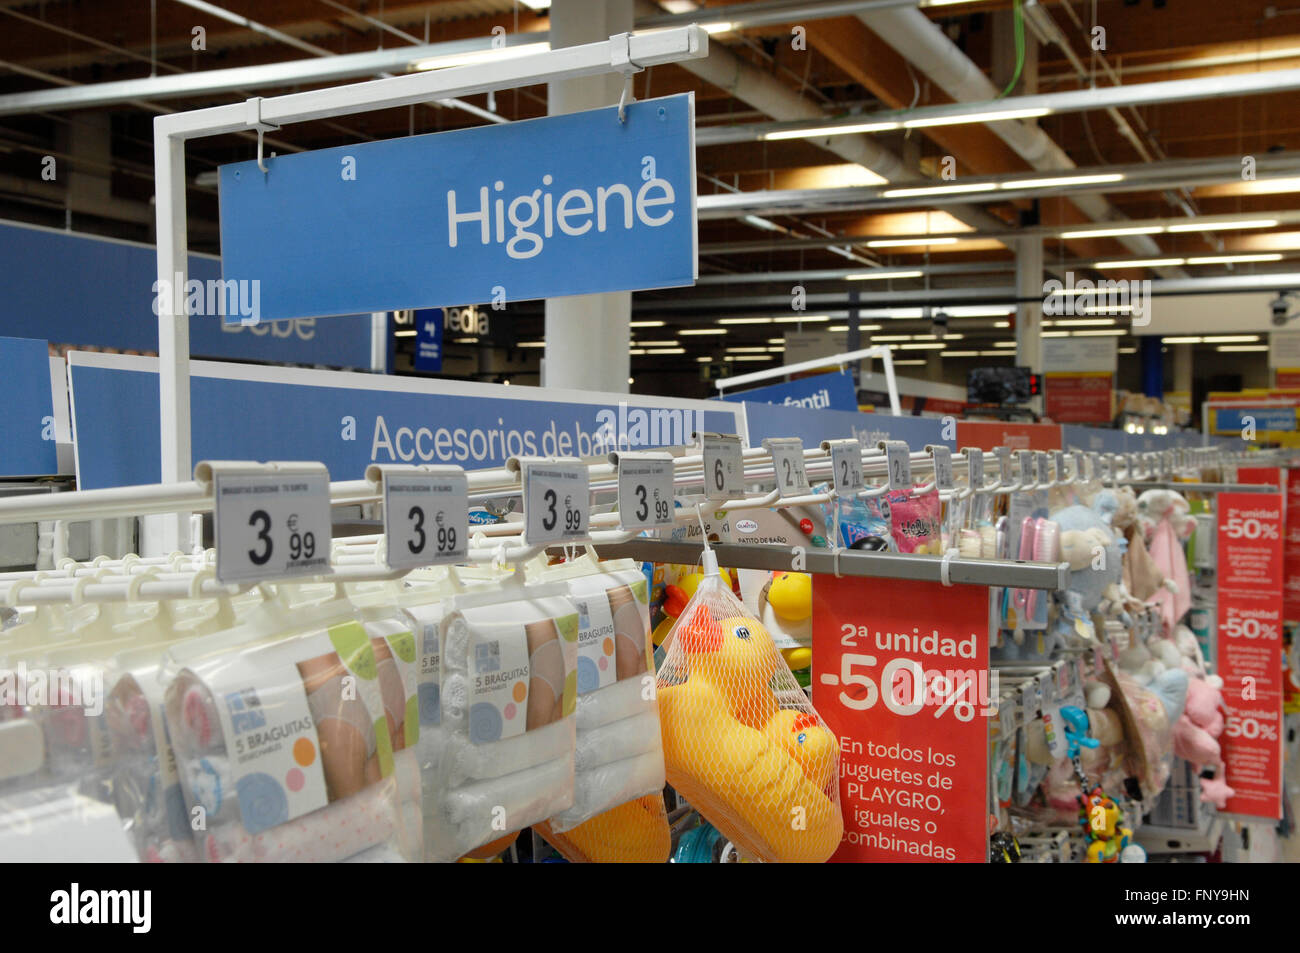 Baby products section of a Carrefour Hypermarket in Malaga Spain Stock Photo